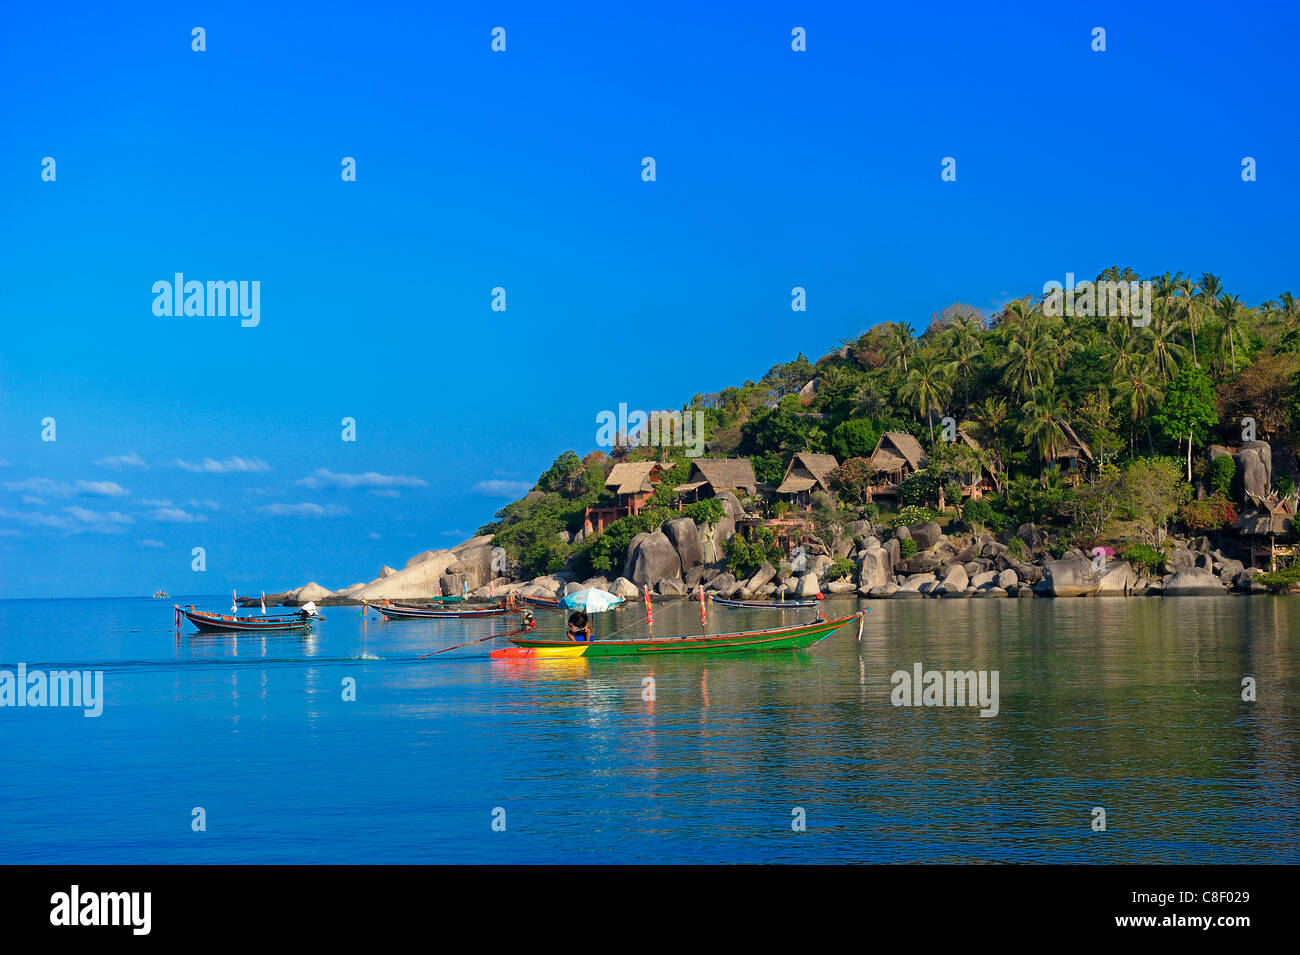 Boats, Sai Ree, Beach, Koh Tao, Thailand, Asia, Stock Photo